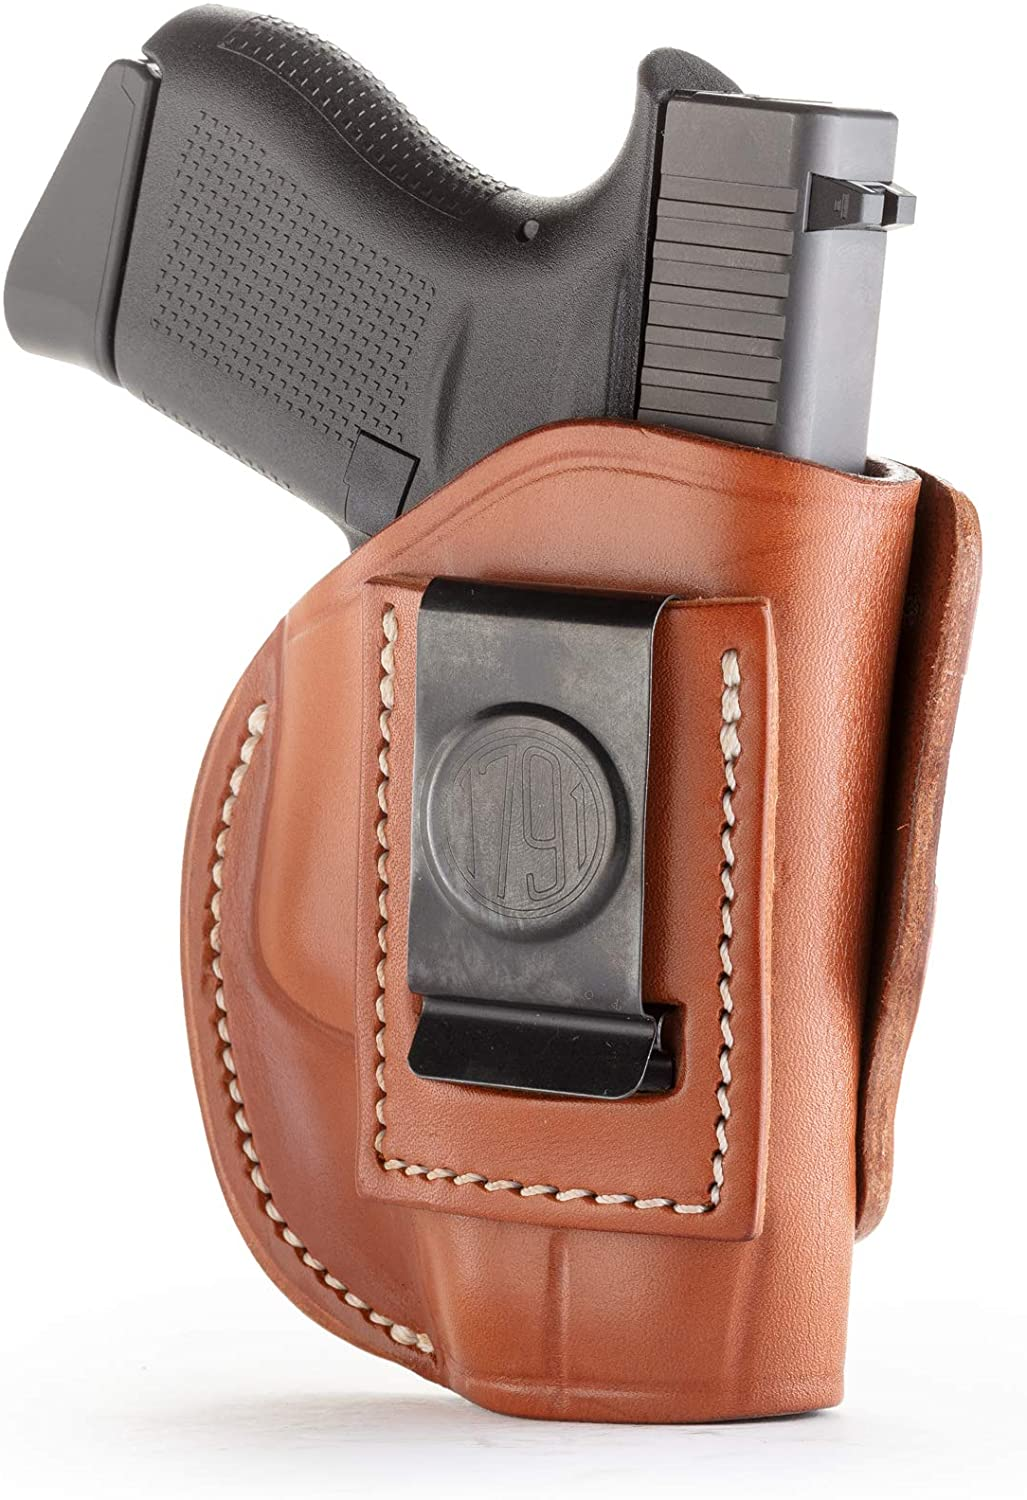 1791 GUNLEATHER 4-Way Glock 43 Holster - OWB and IWB CCW Holster - Right Handed Leather Gun Holster - Fits Glock 43 (G43), Glock 42 (G42), Kahr CW380 and S&W Bodyguard